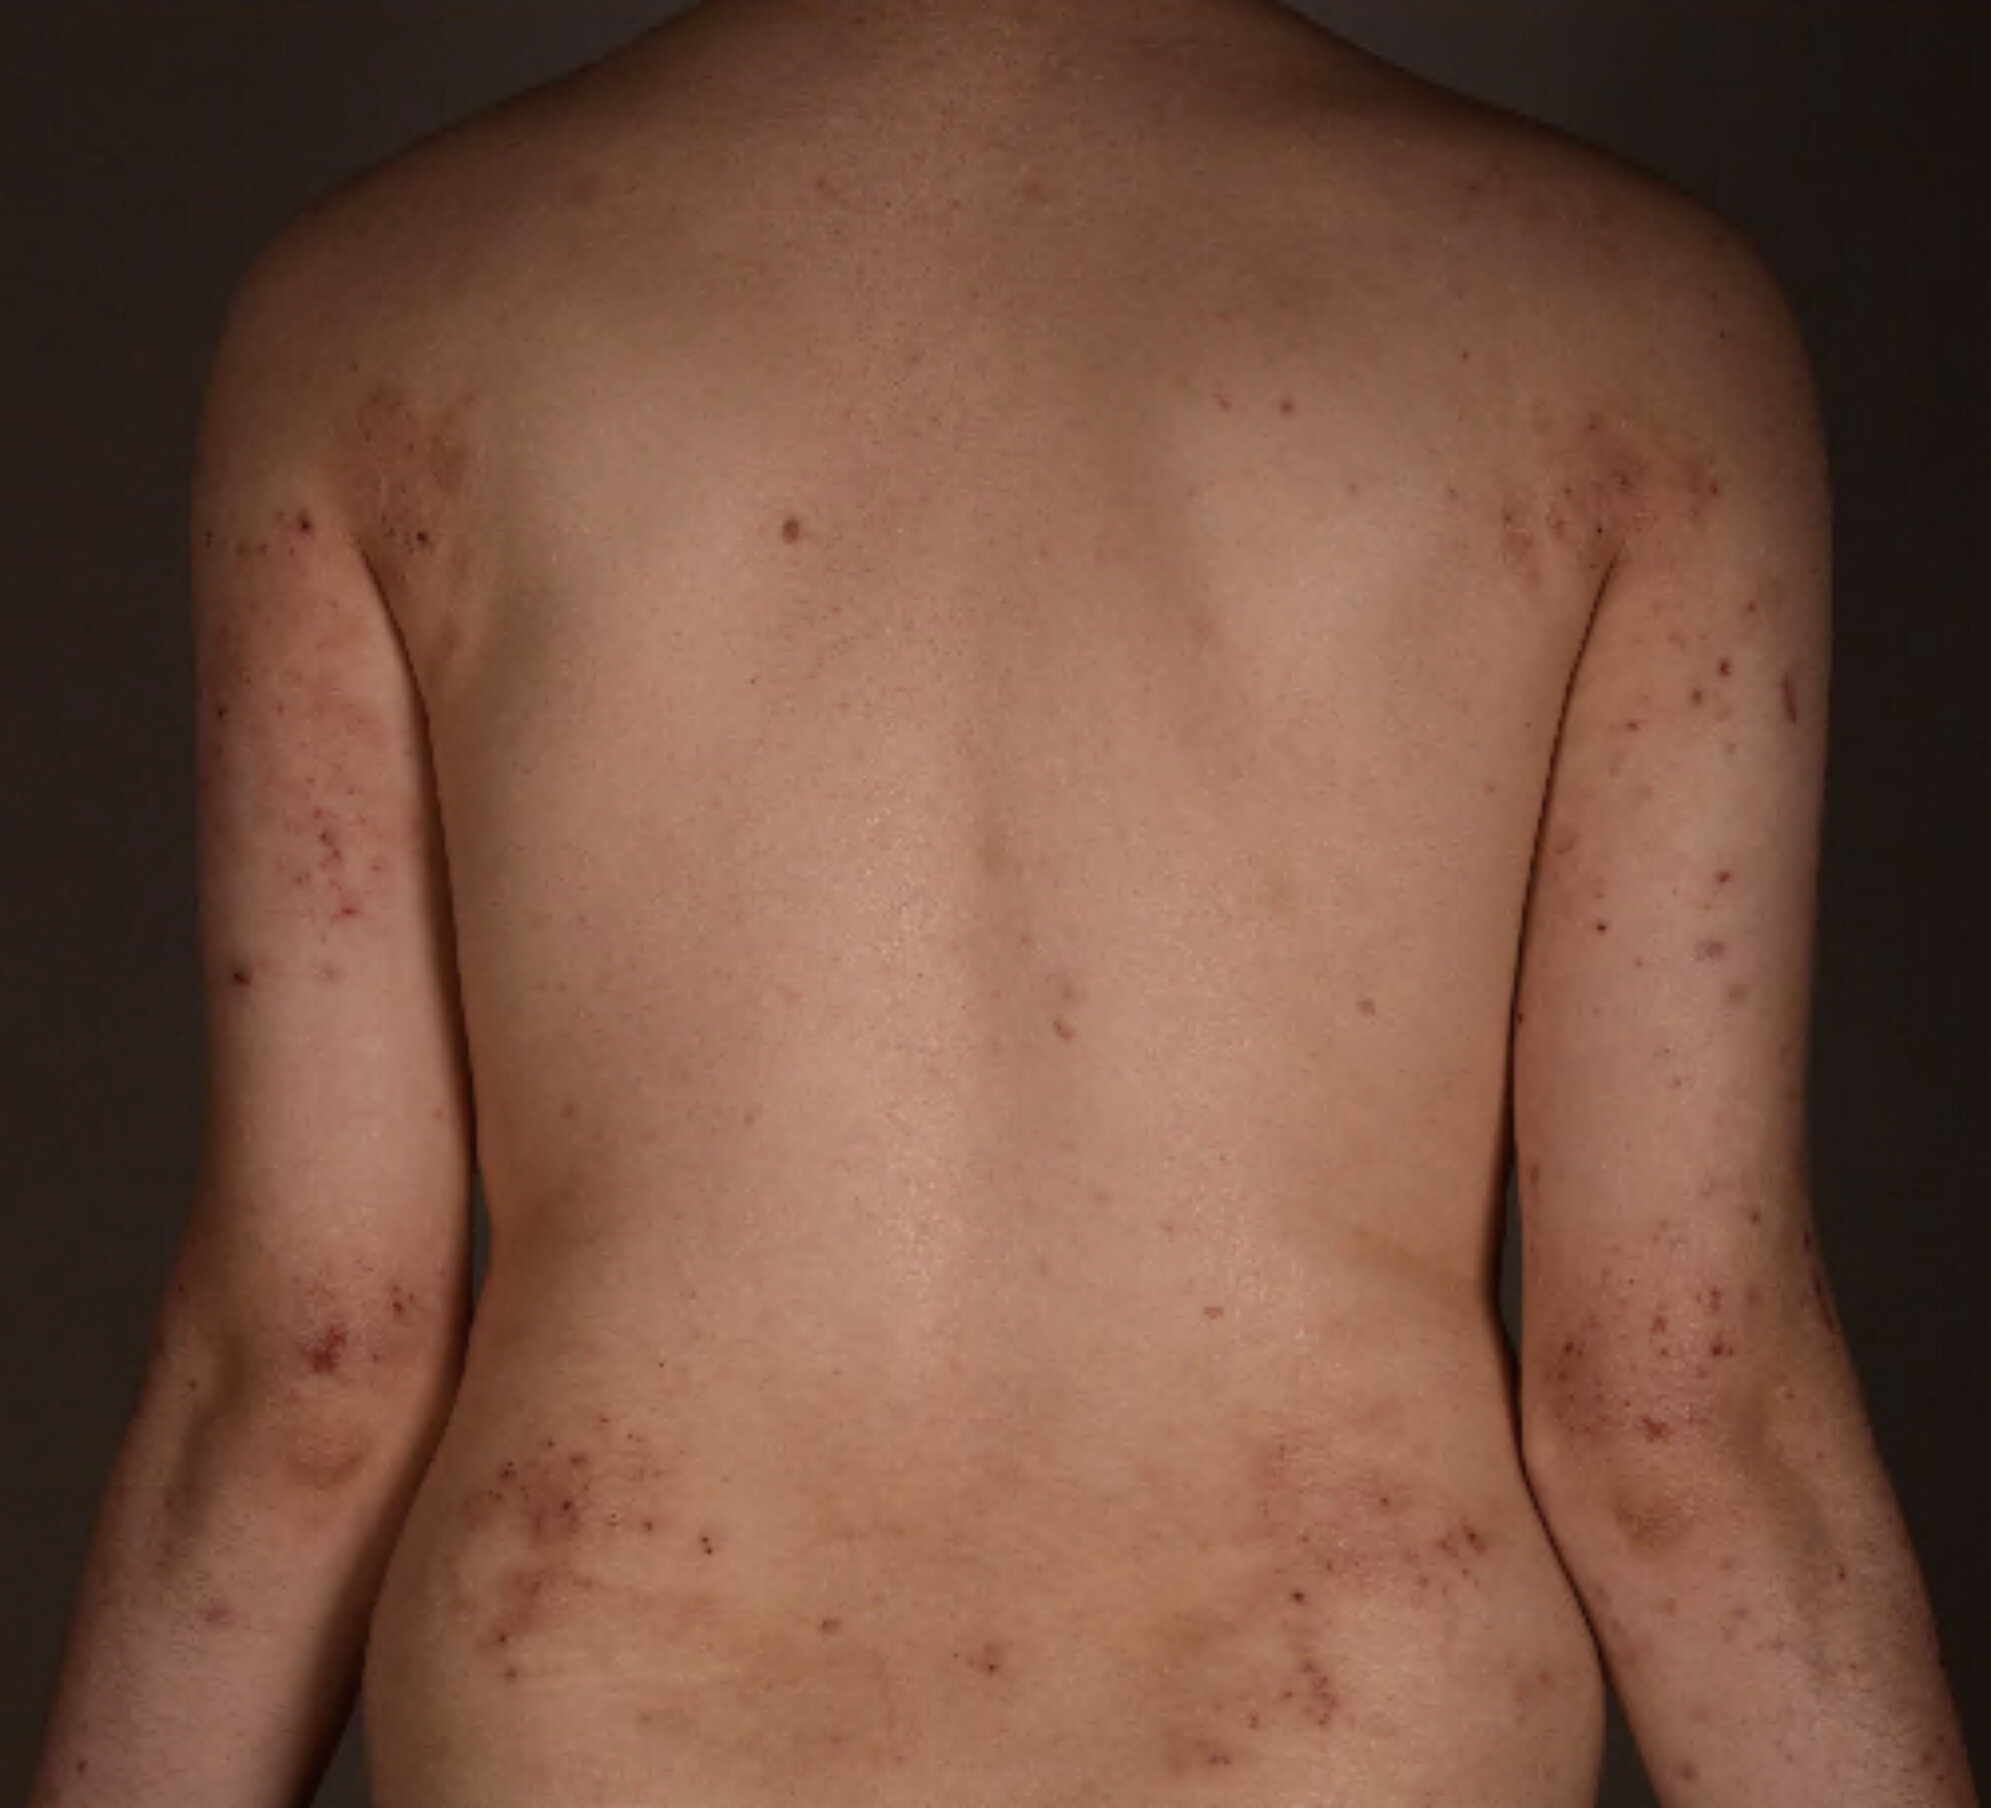 New potential approach to treat atopic dermatitis